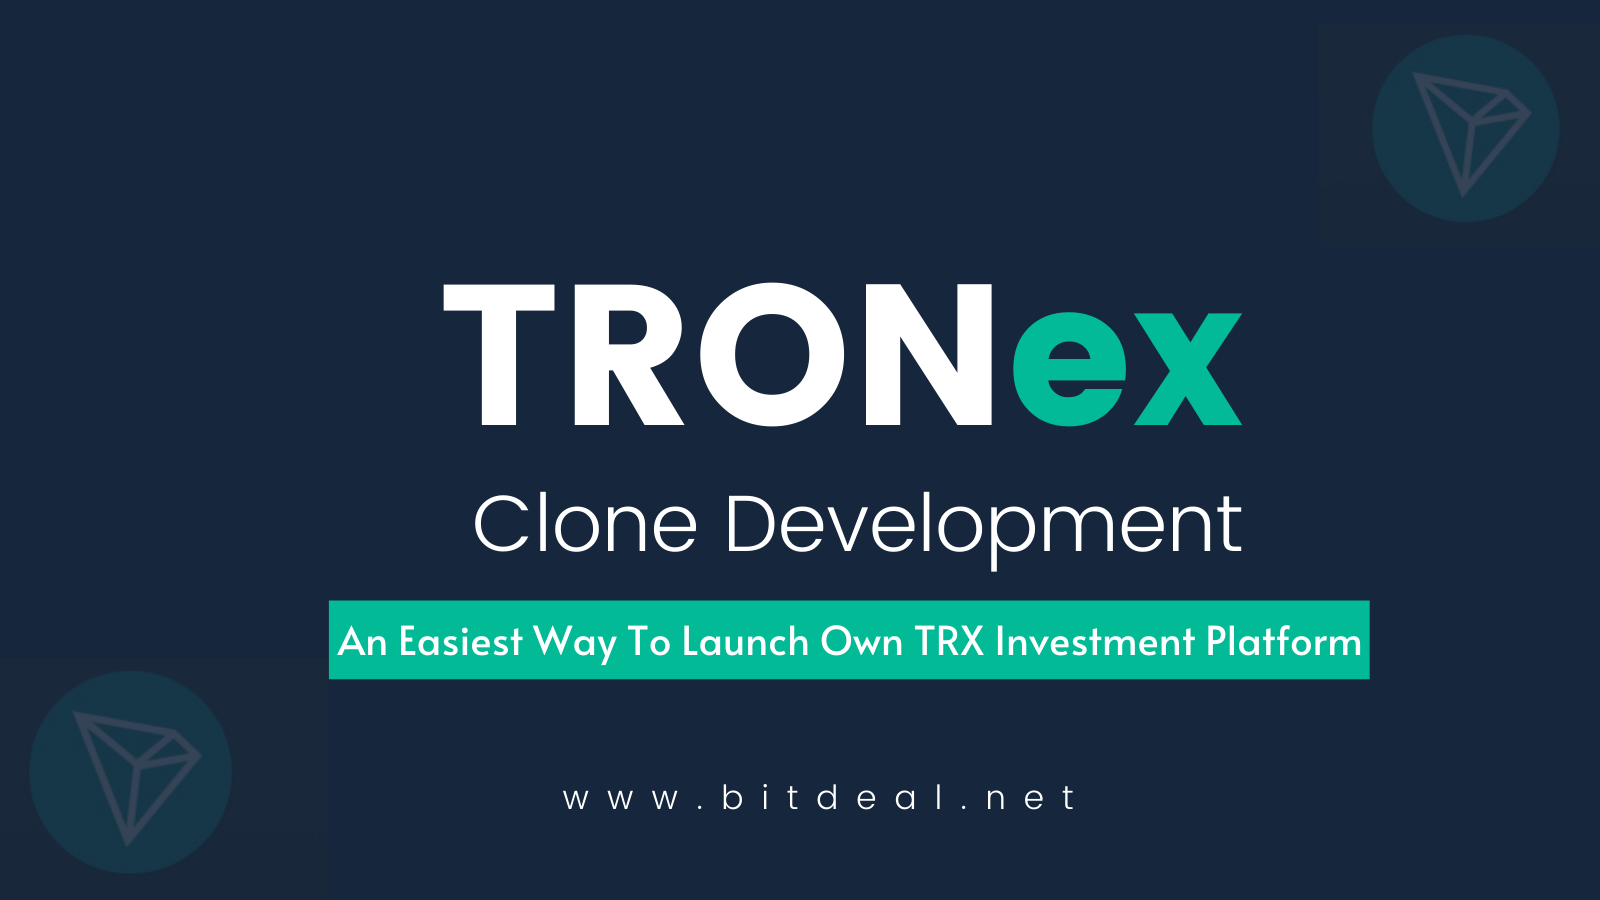 TRONex Clone - Launch Your Own TRON Investment Smart Contract Platform